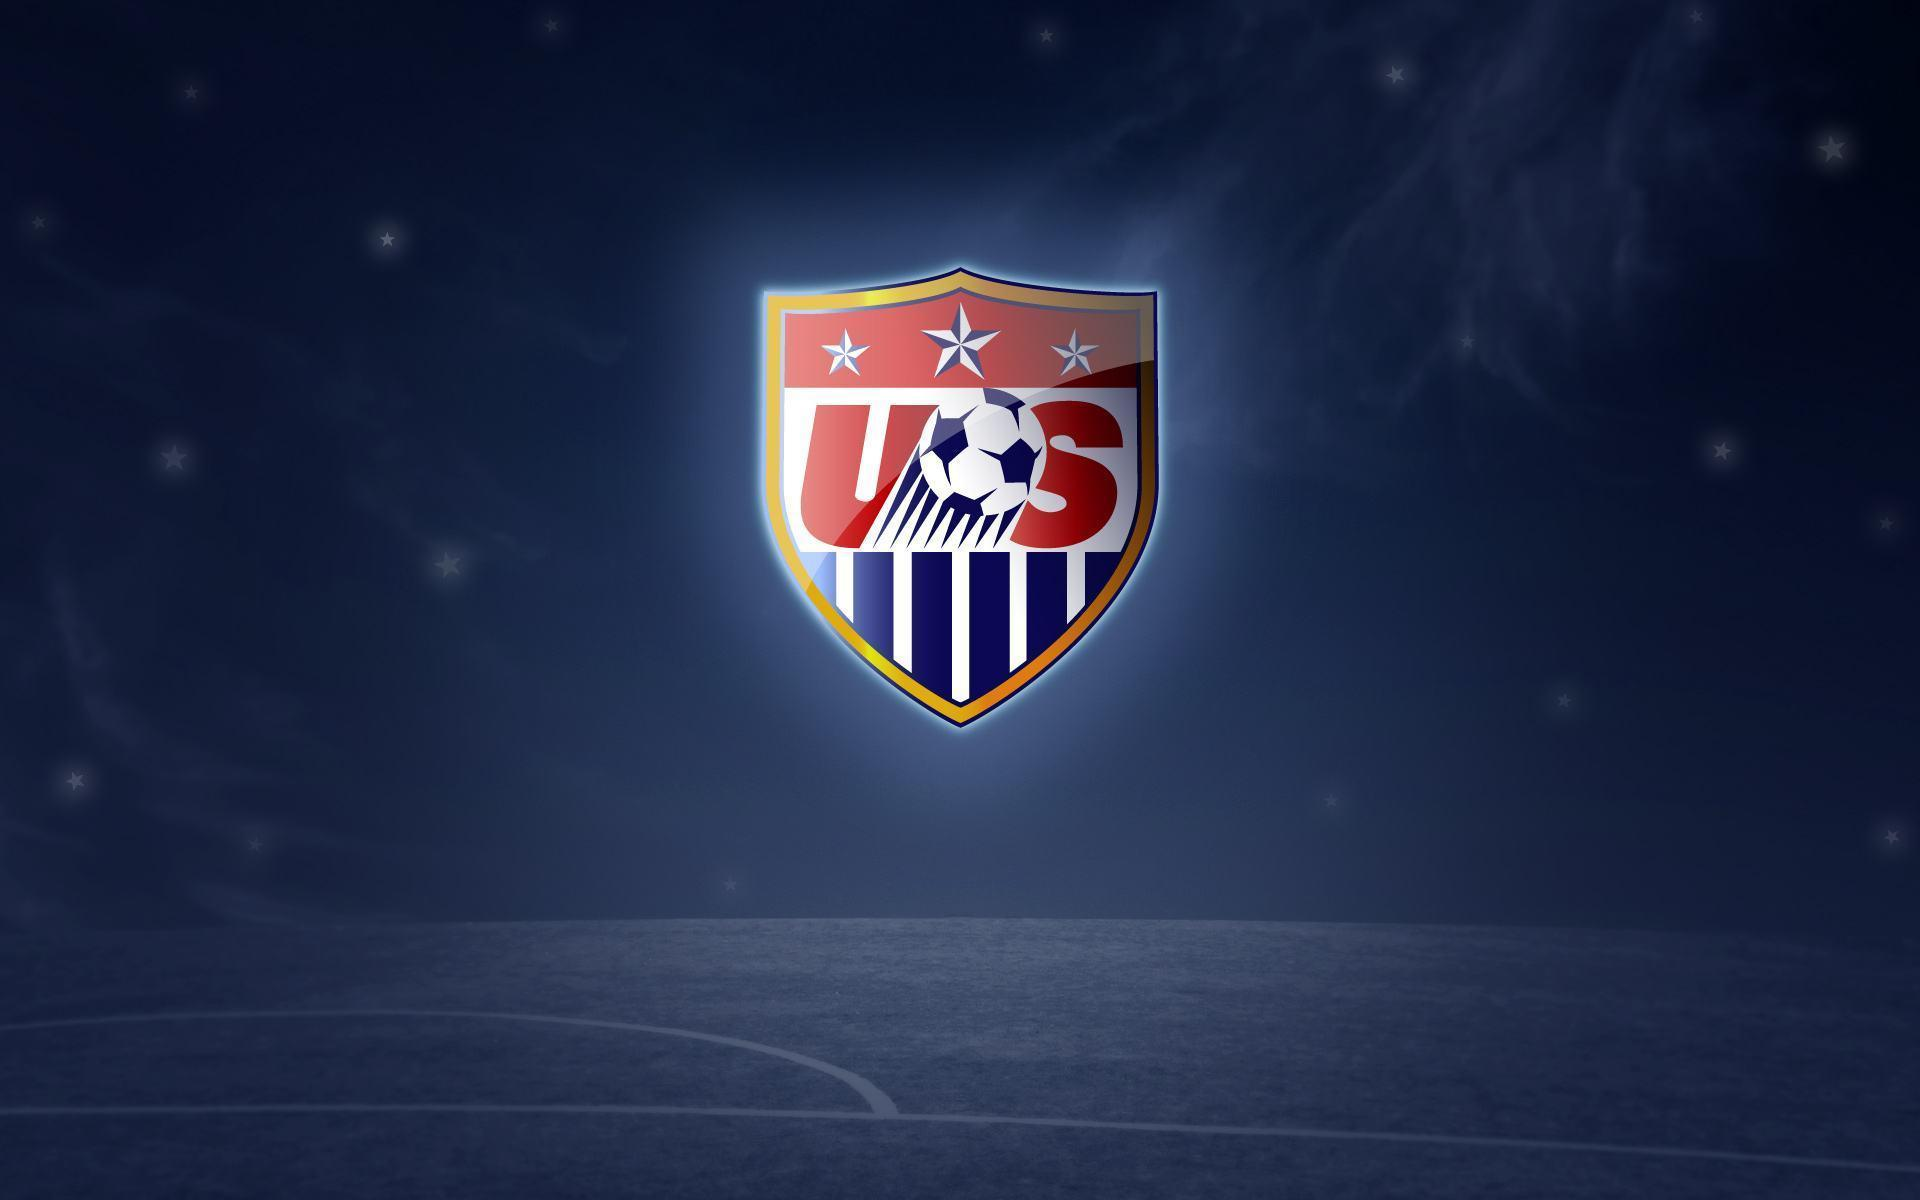 wallpapers usa united - photo #26